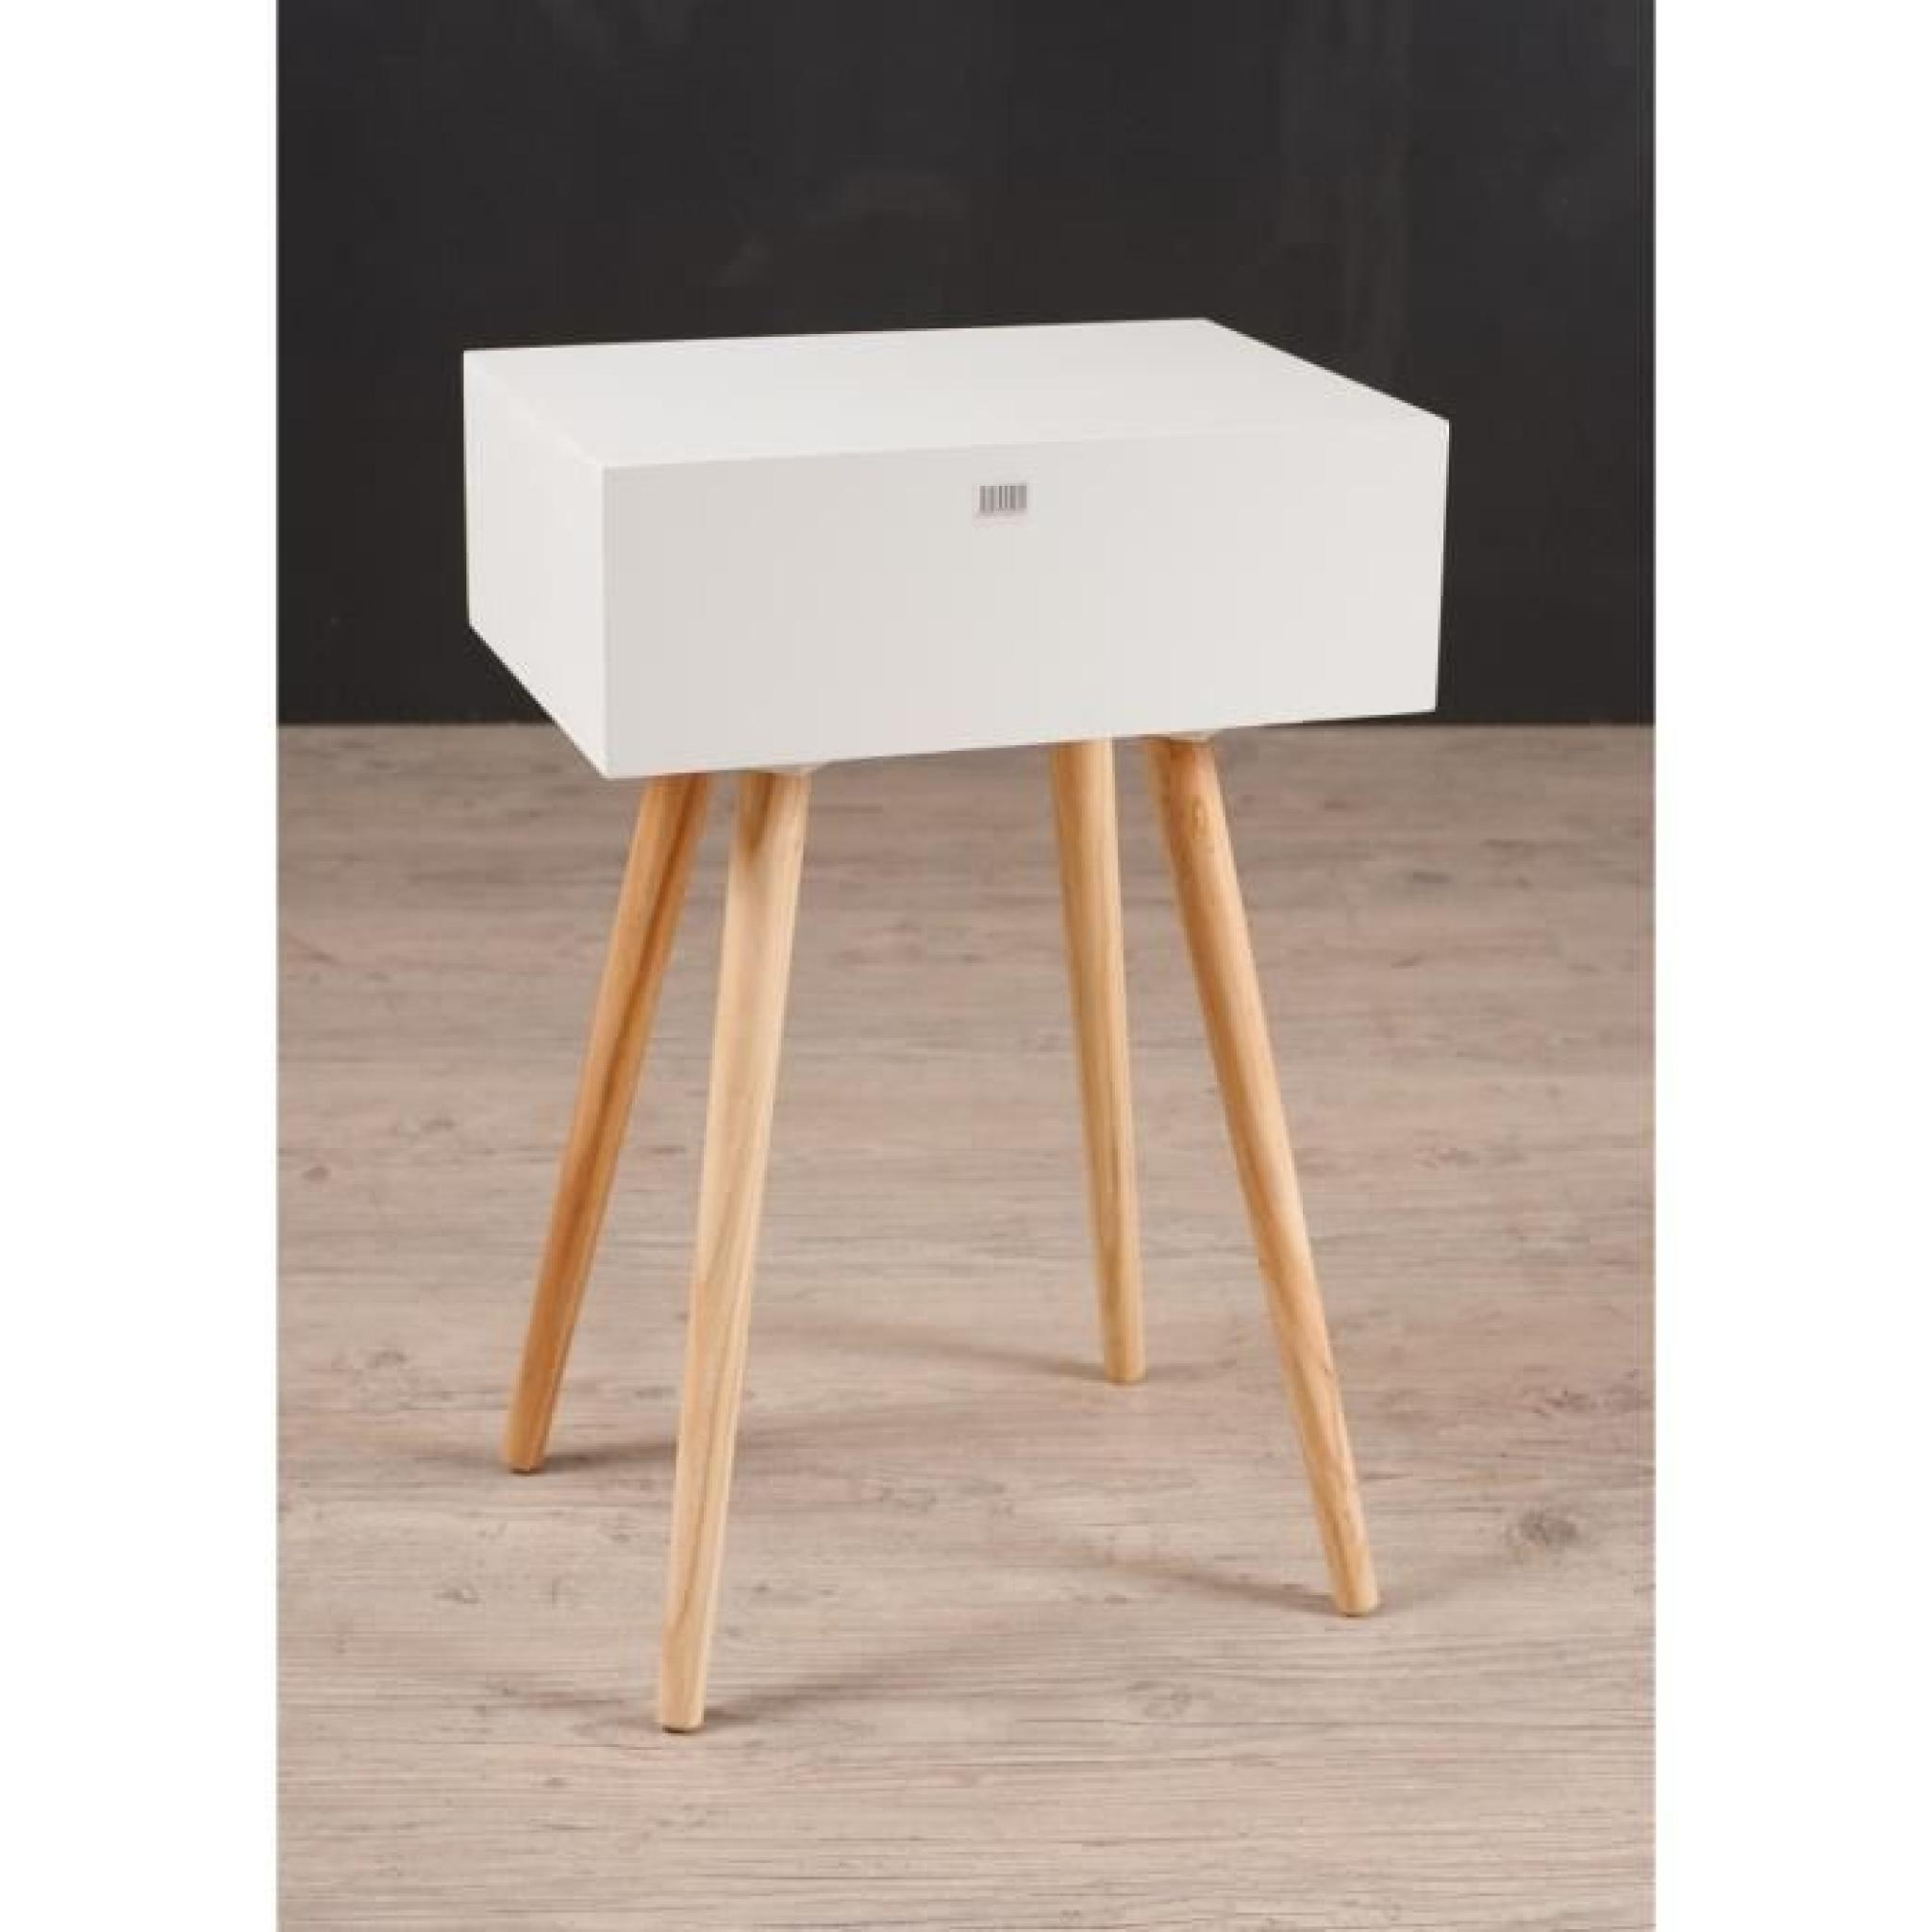 Cracovie chevet 1 tiroir 40 cm blanc gris et taupe for Table de chevet blanc laque pas cher